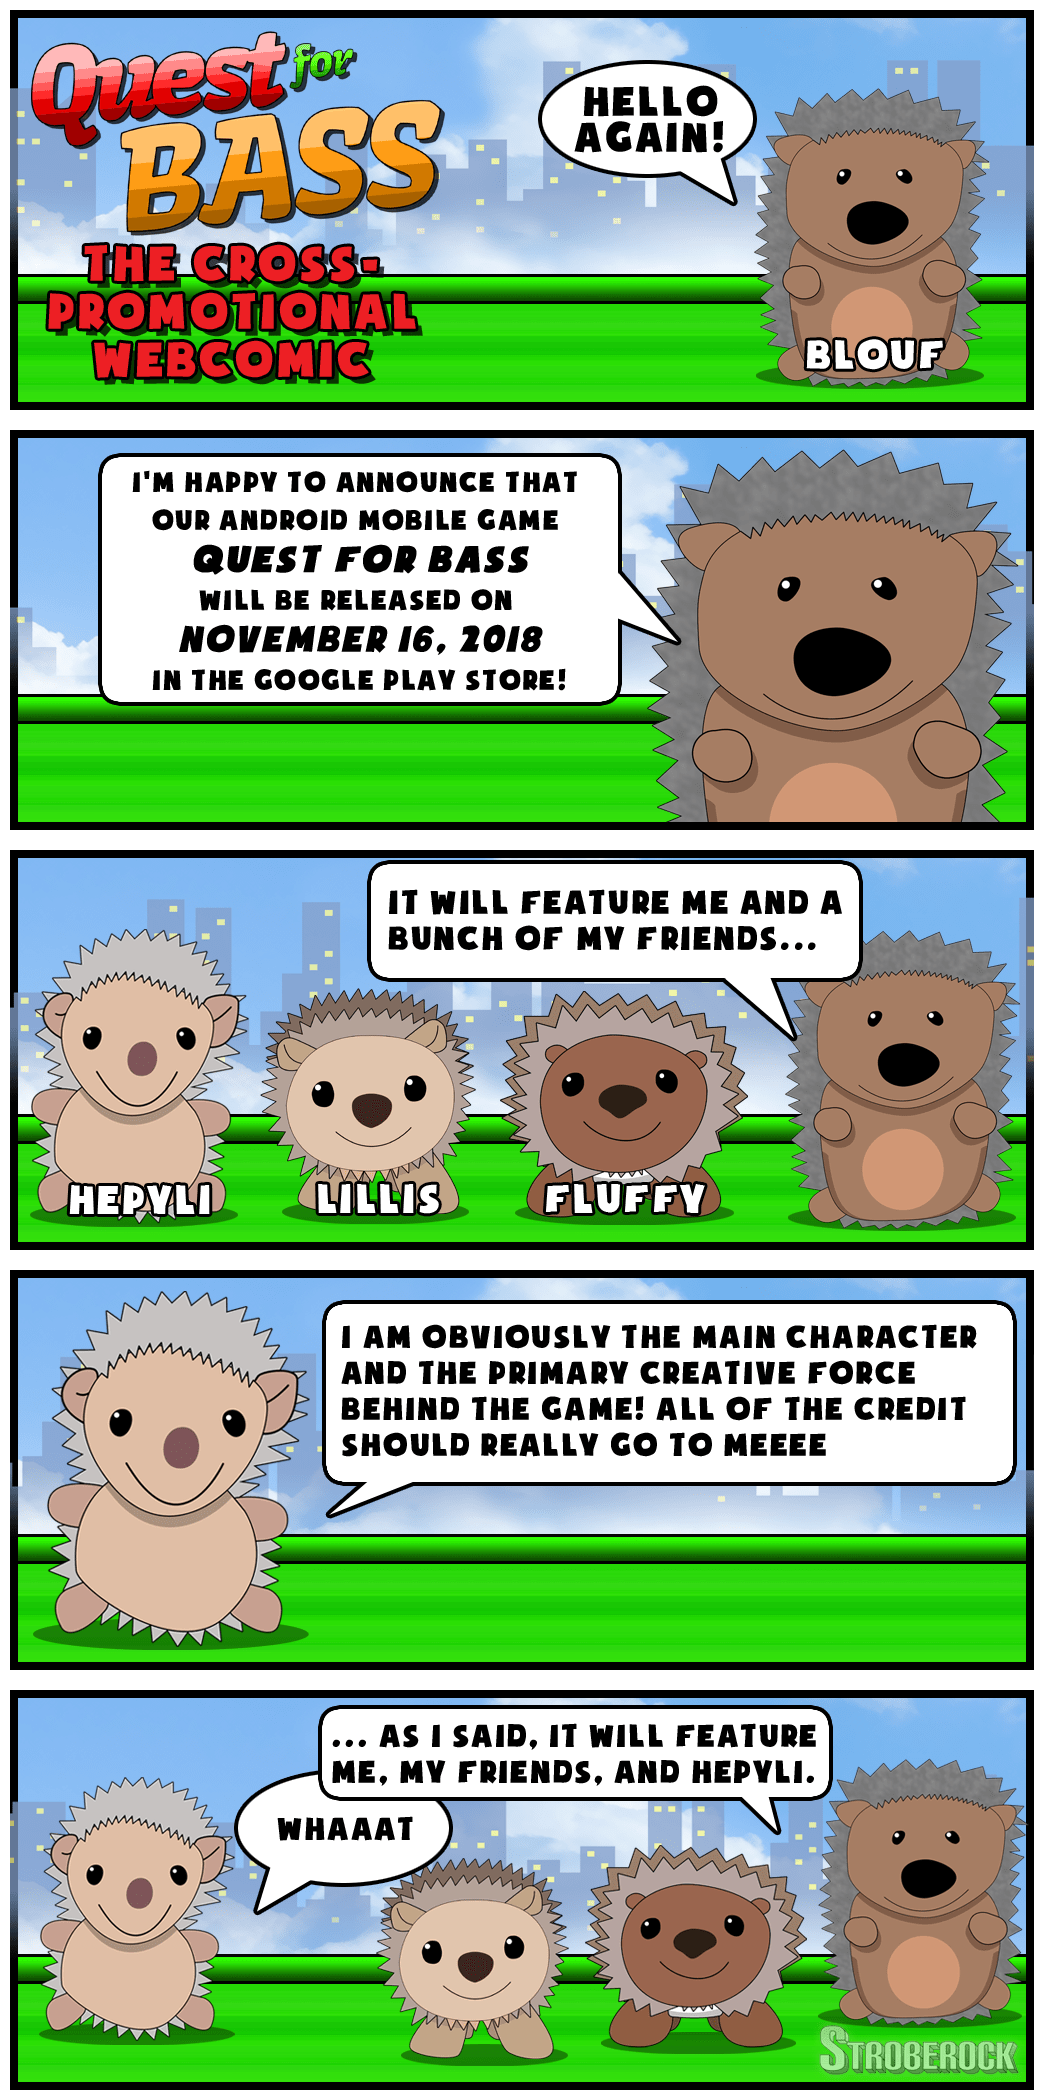 "Webcomic featuring Blouf and Hepyli. Blouf says, ""I'm happy to announce that our upcoming android mobile game, Quest for Bass, will be released on November 16th, 2018, in the Google Play Store! It will feature me and a bunch of my friends..."" Hepyli interrupts and says, ""I am obviously the main character and the primary creative force behind the game! All of the credit really should be going to me"". Blouf says, ""As I said, the game features me, my friends, and Hepyli."" To which Hepyli exclaims, ""Whaaat"""